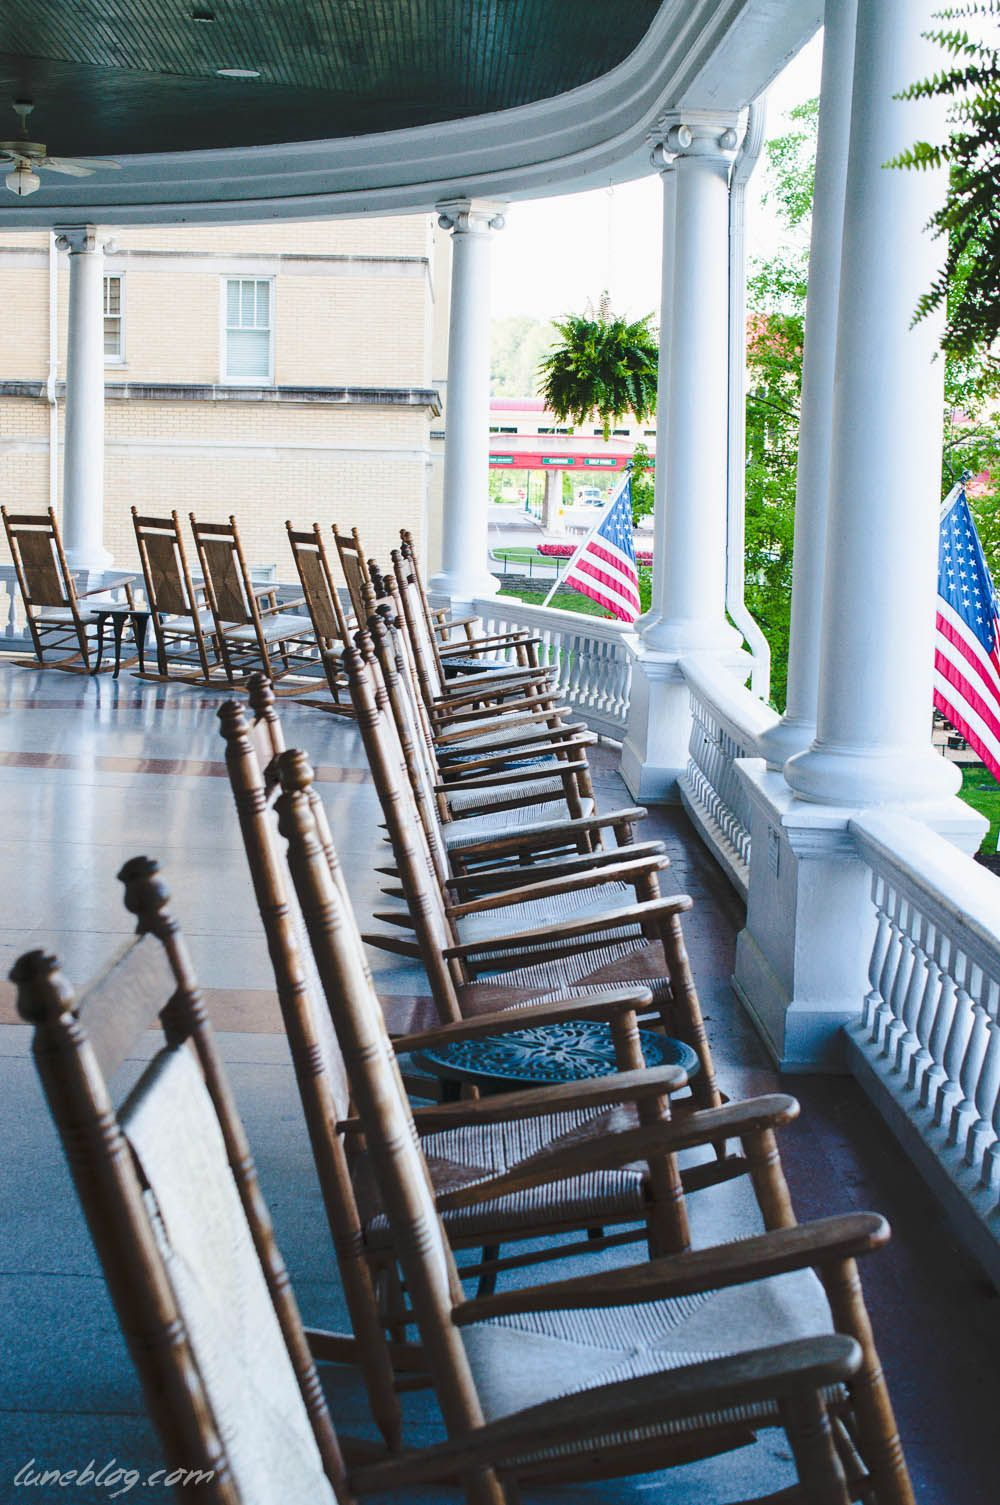 Relaxation, Luxury & History in French Lick, Indiana